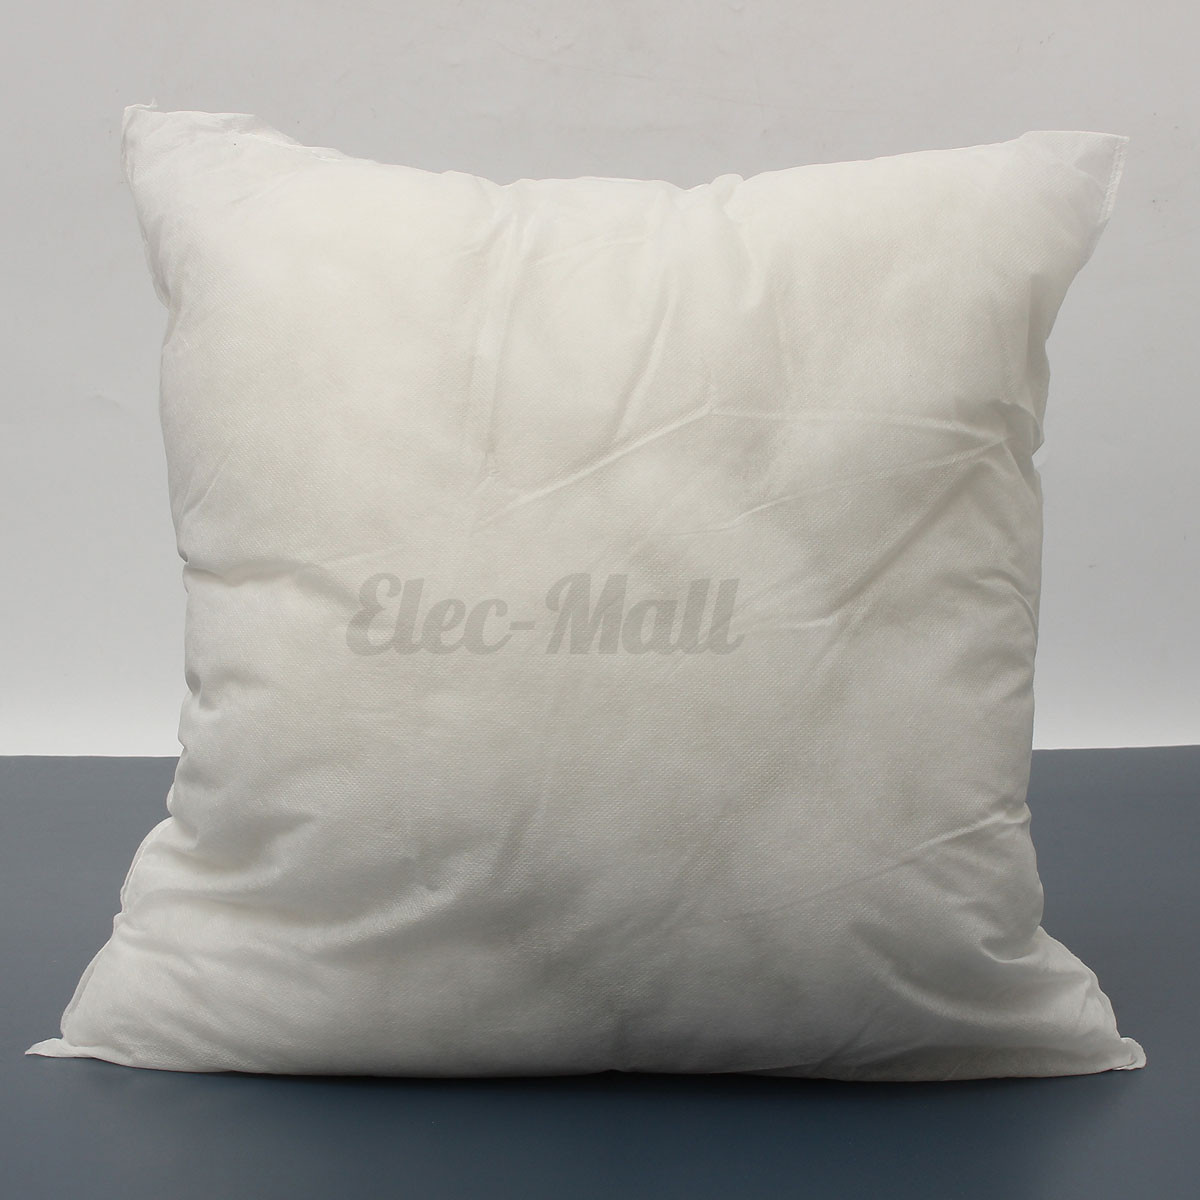 sofa cushion inserts l shaped design pictures white cotton throw hold pillow inner pads fillers